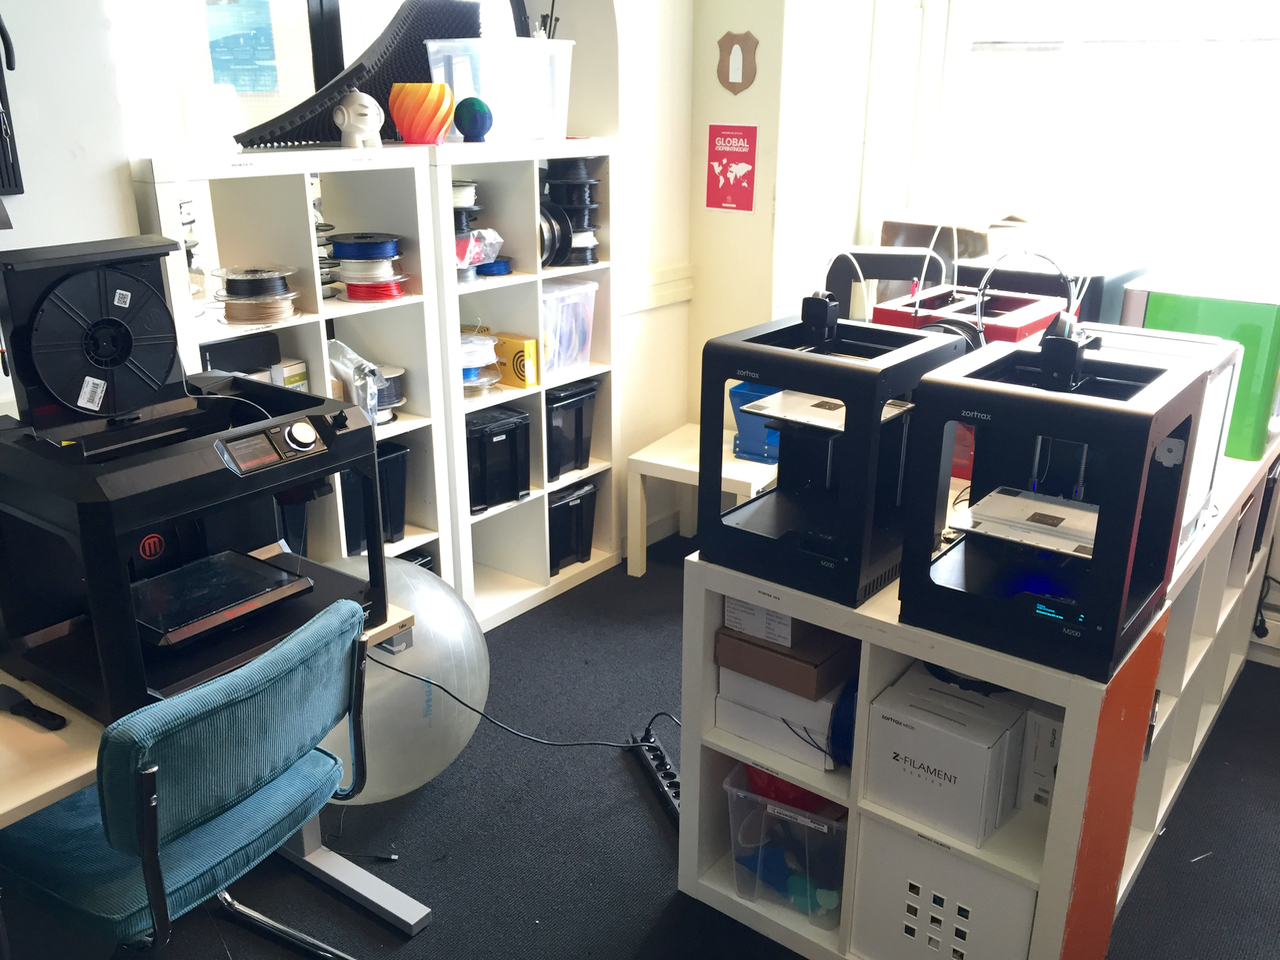 The 3D printer lab in 3D Hubs' HQ